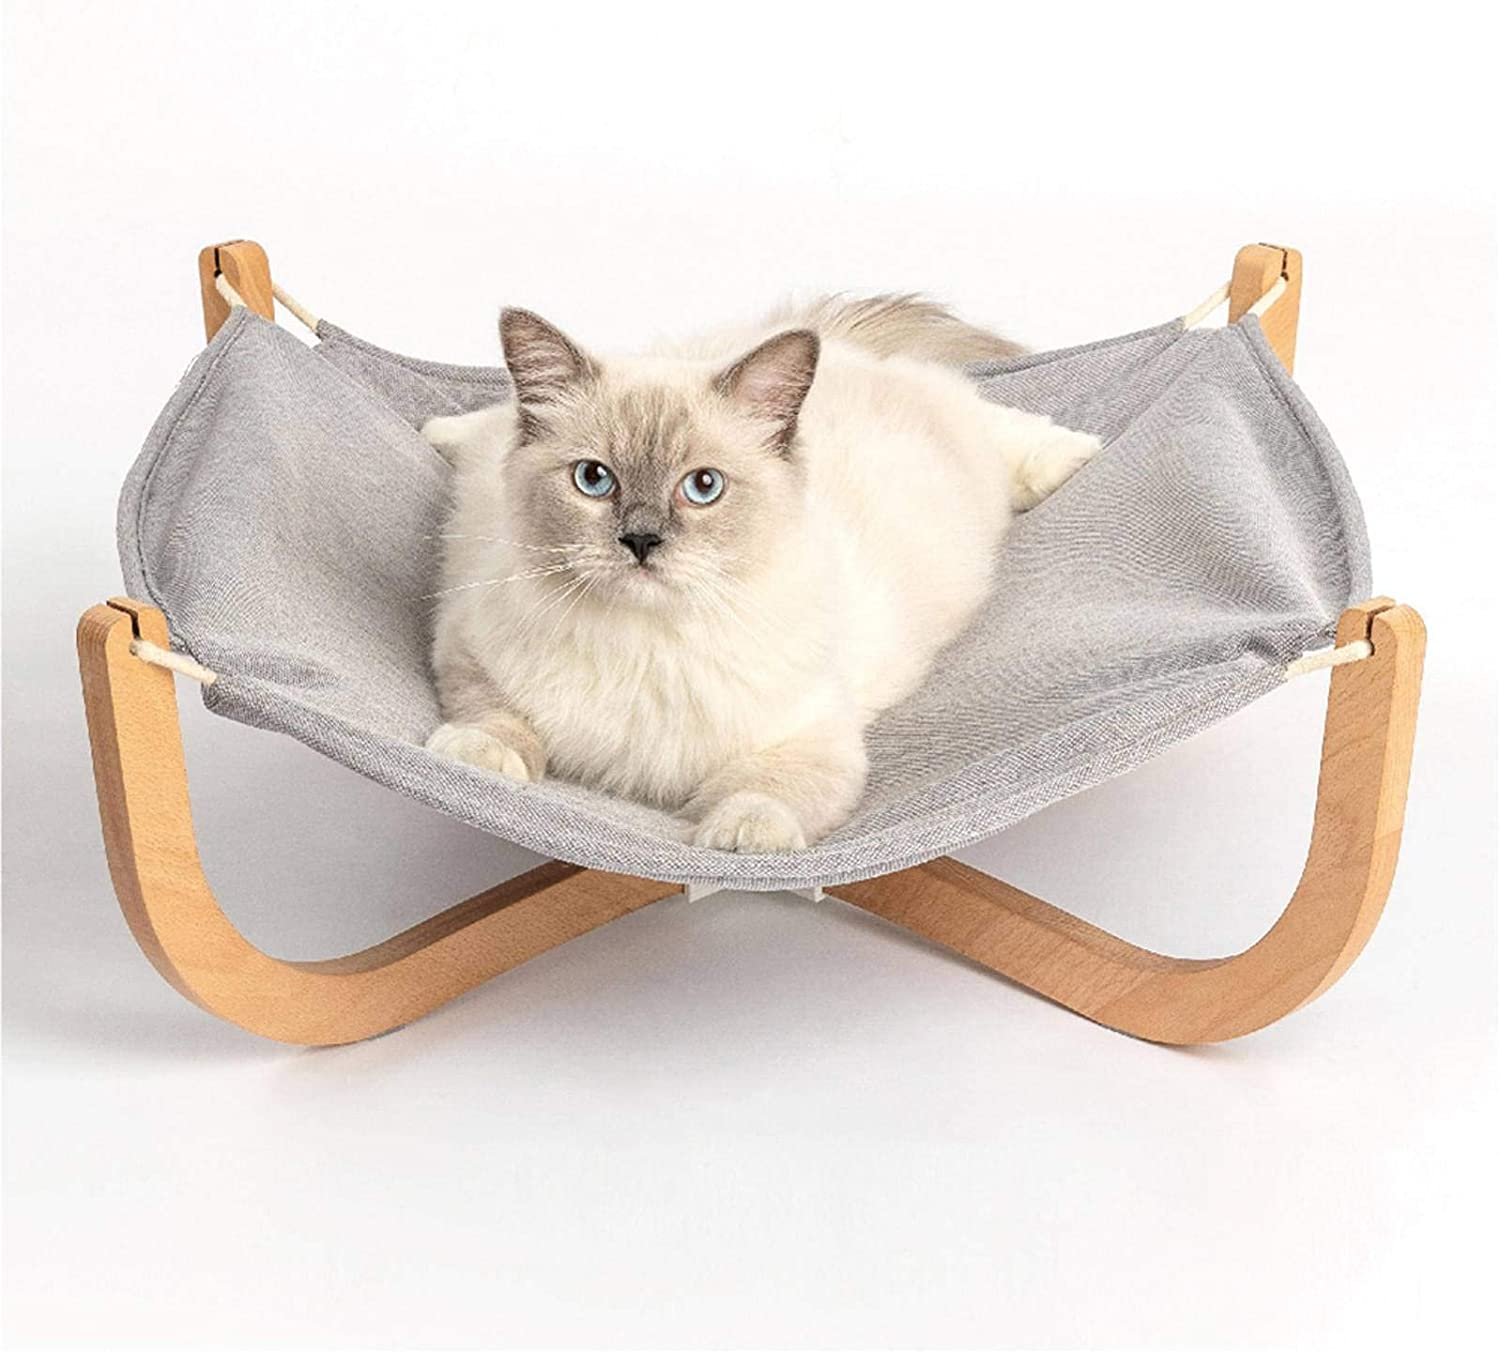 N-B Pet Litter Waterloo Solid Wood Cat Hammock Wooden Cat Bed Cat Litter For Four Seasons For Easy Storage of Cats